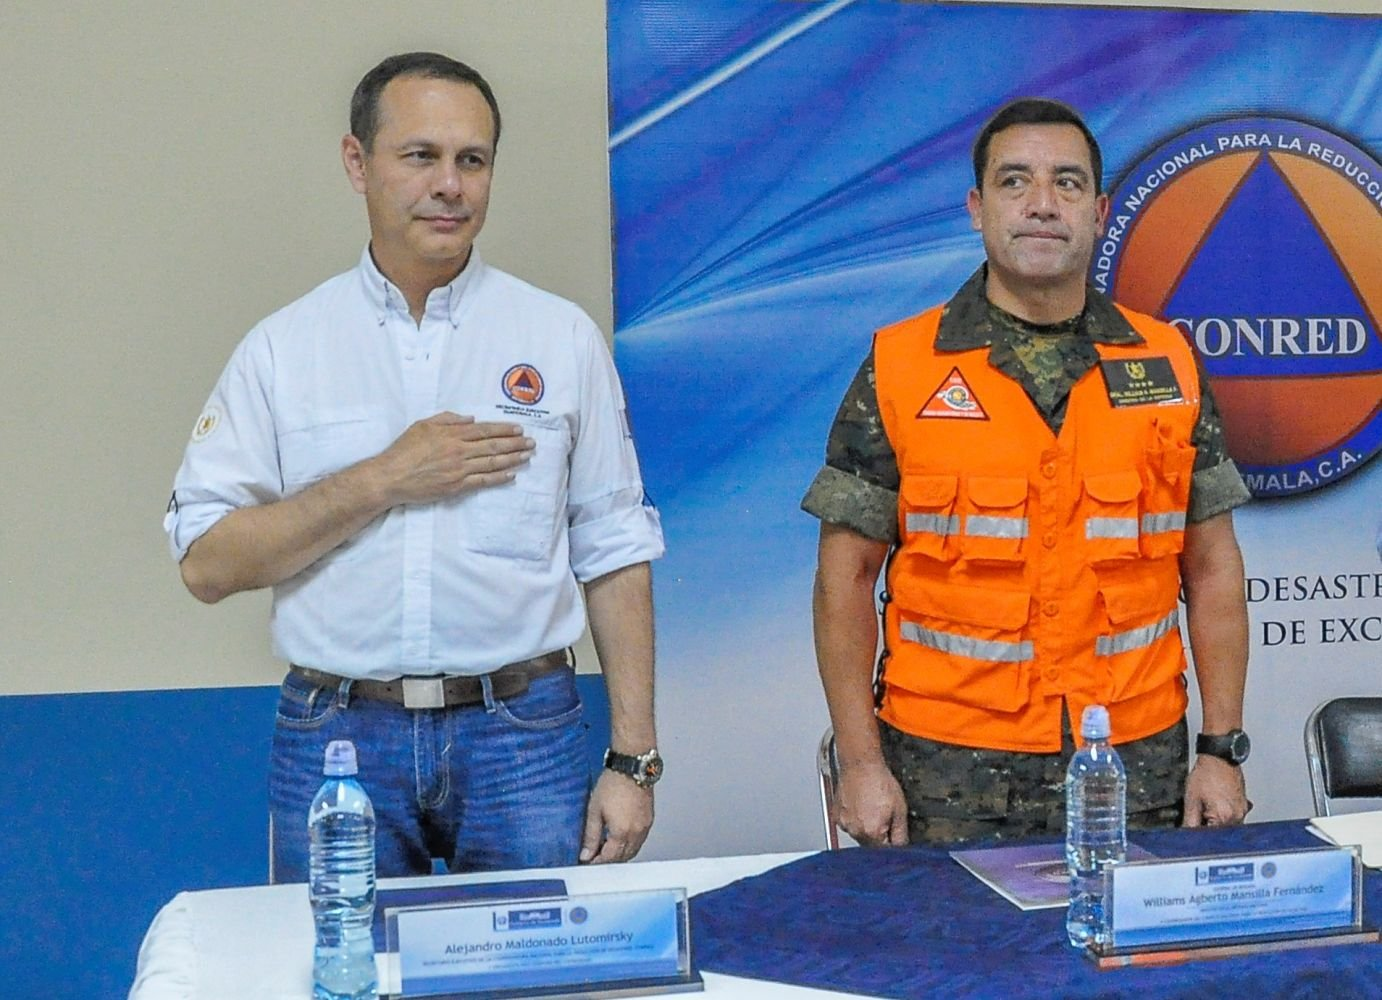 U.S. Southern Command Supports Guatemalan Disaster Response